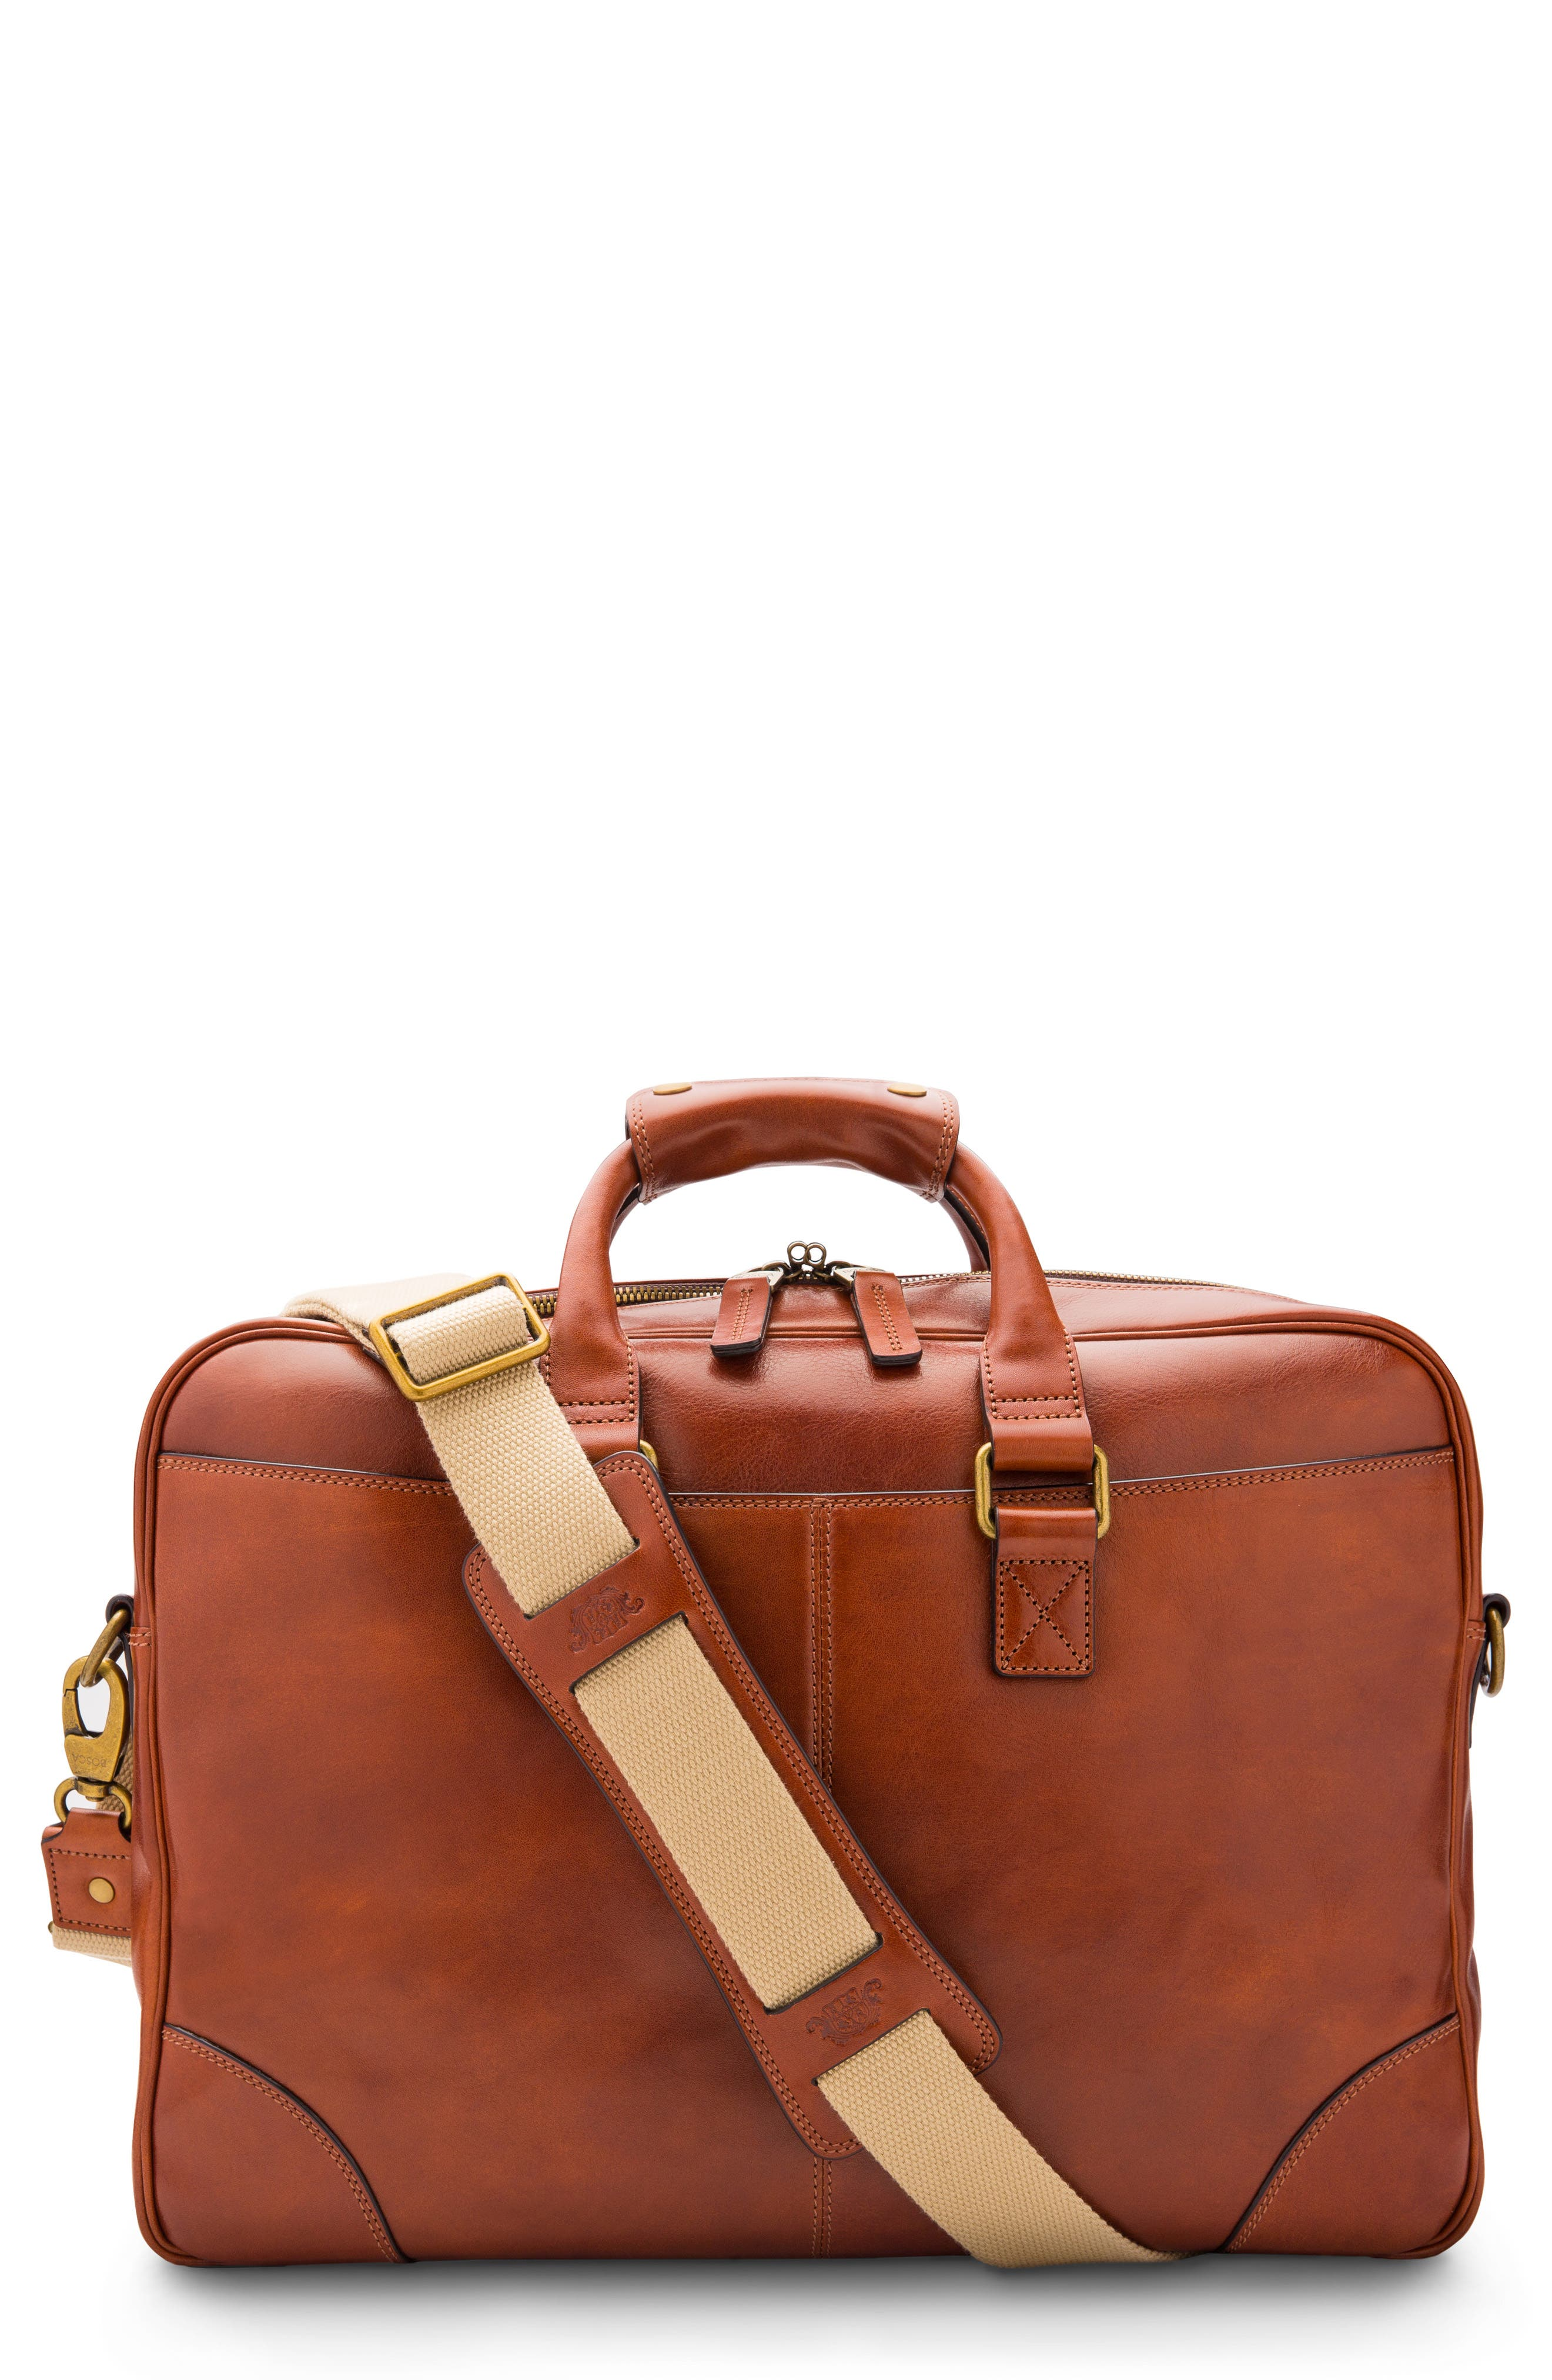 Spacious construction means easy organization in this well-made briefcase built from richly colored Italian leather. Style Name: Bosca Leather Double Gusset Briefcase. Style Number: 5981815. Available in stores.